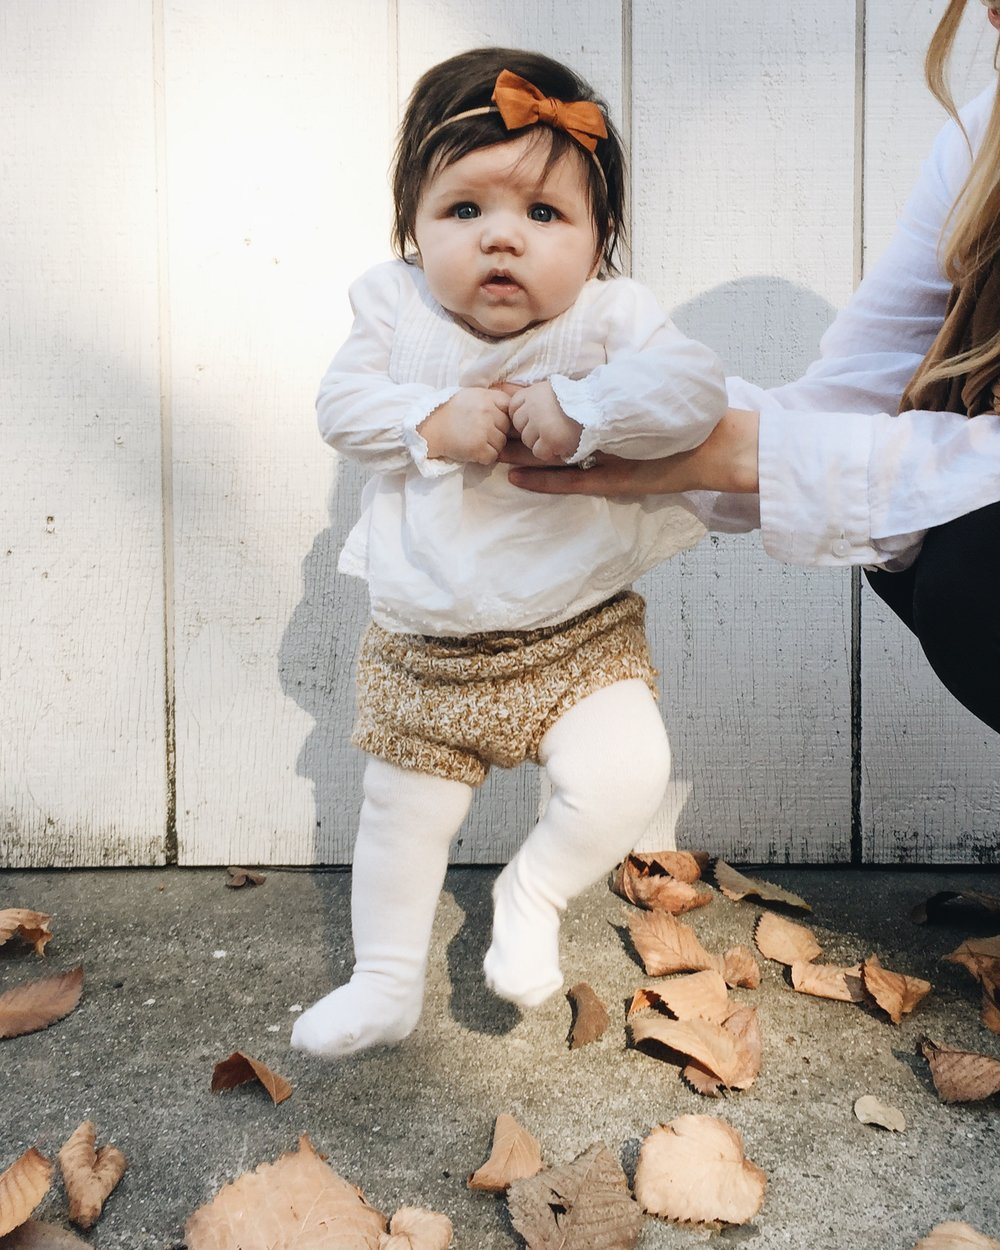 Nora Jane's bow from @joeymaehandmade on Instagram, outfit from Zara, cute face from her mama and dada 😜